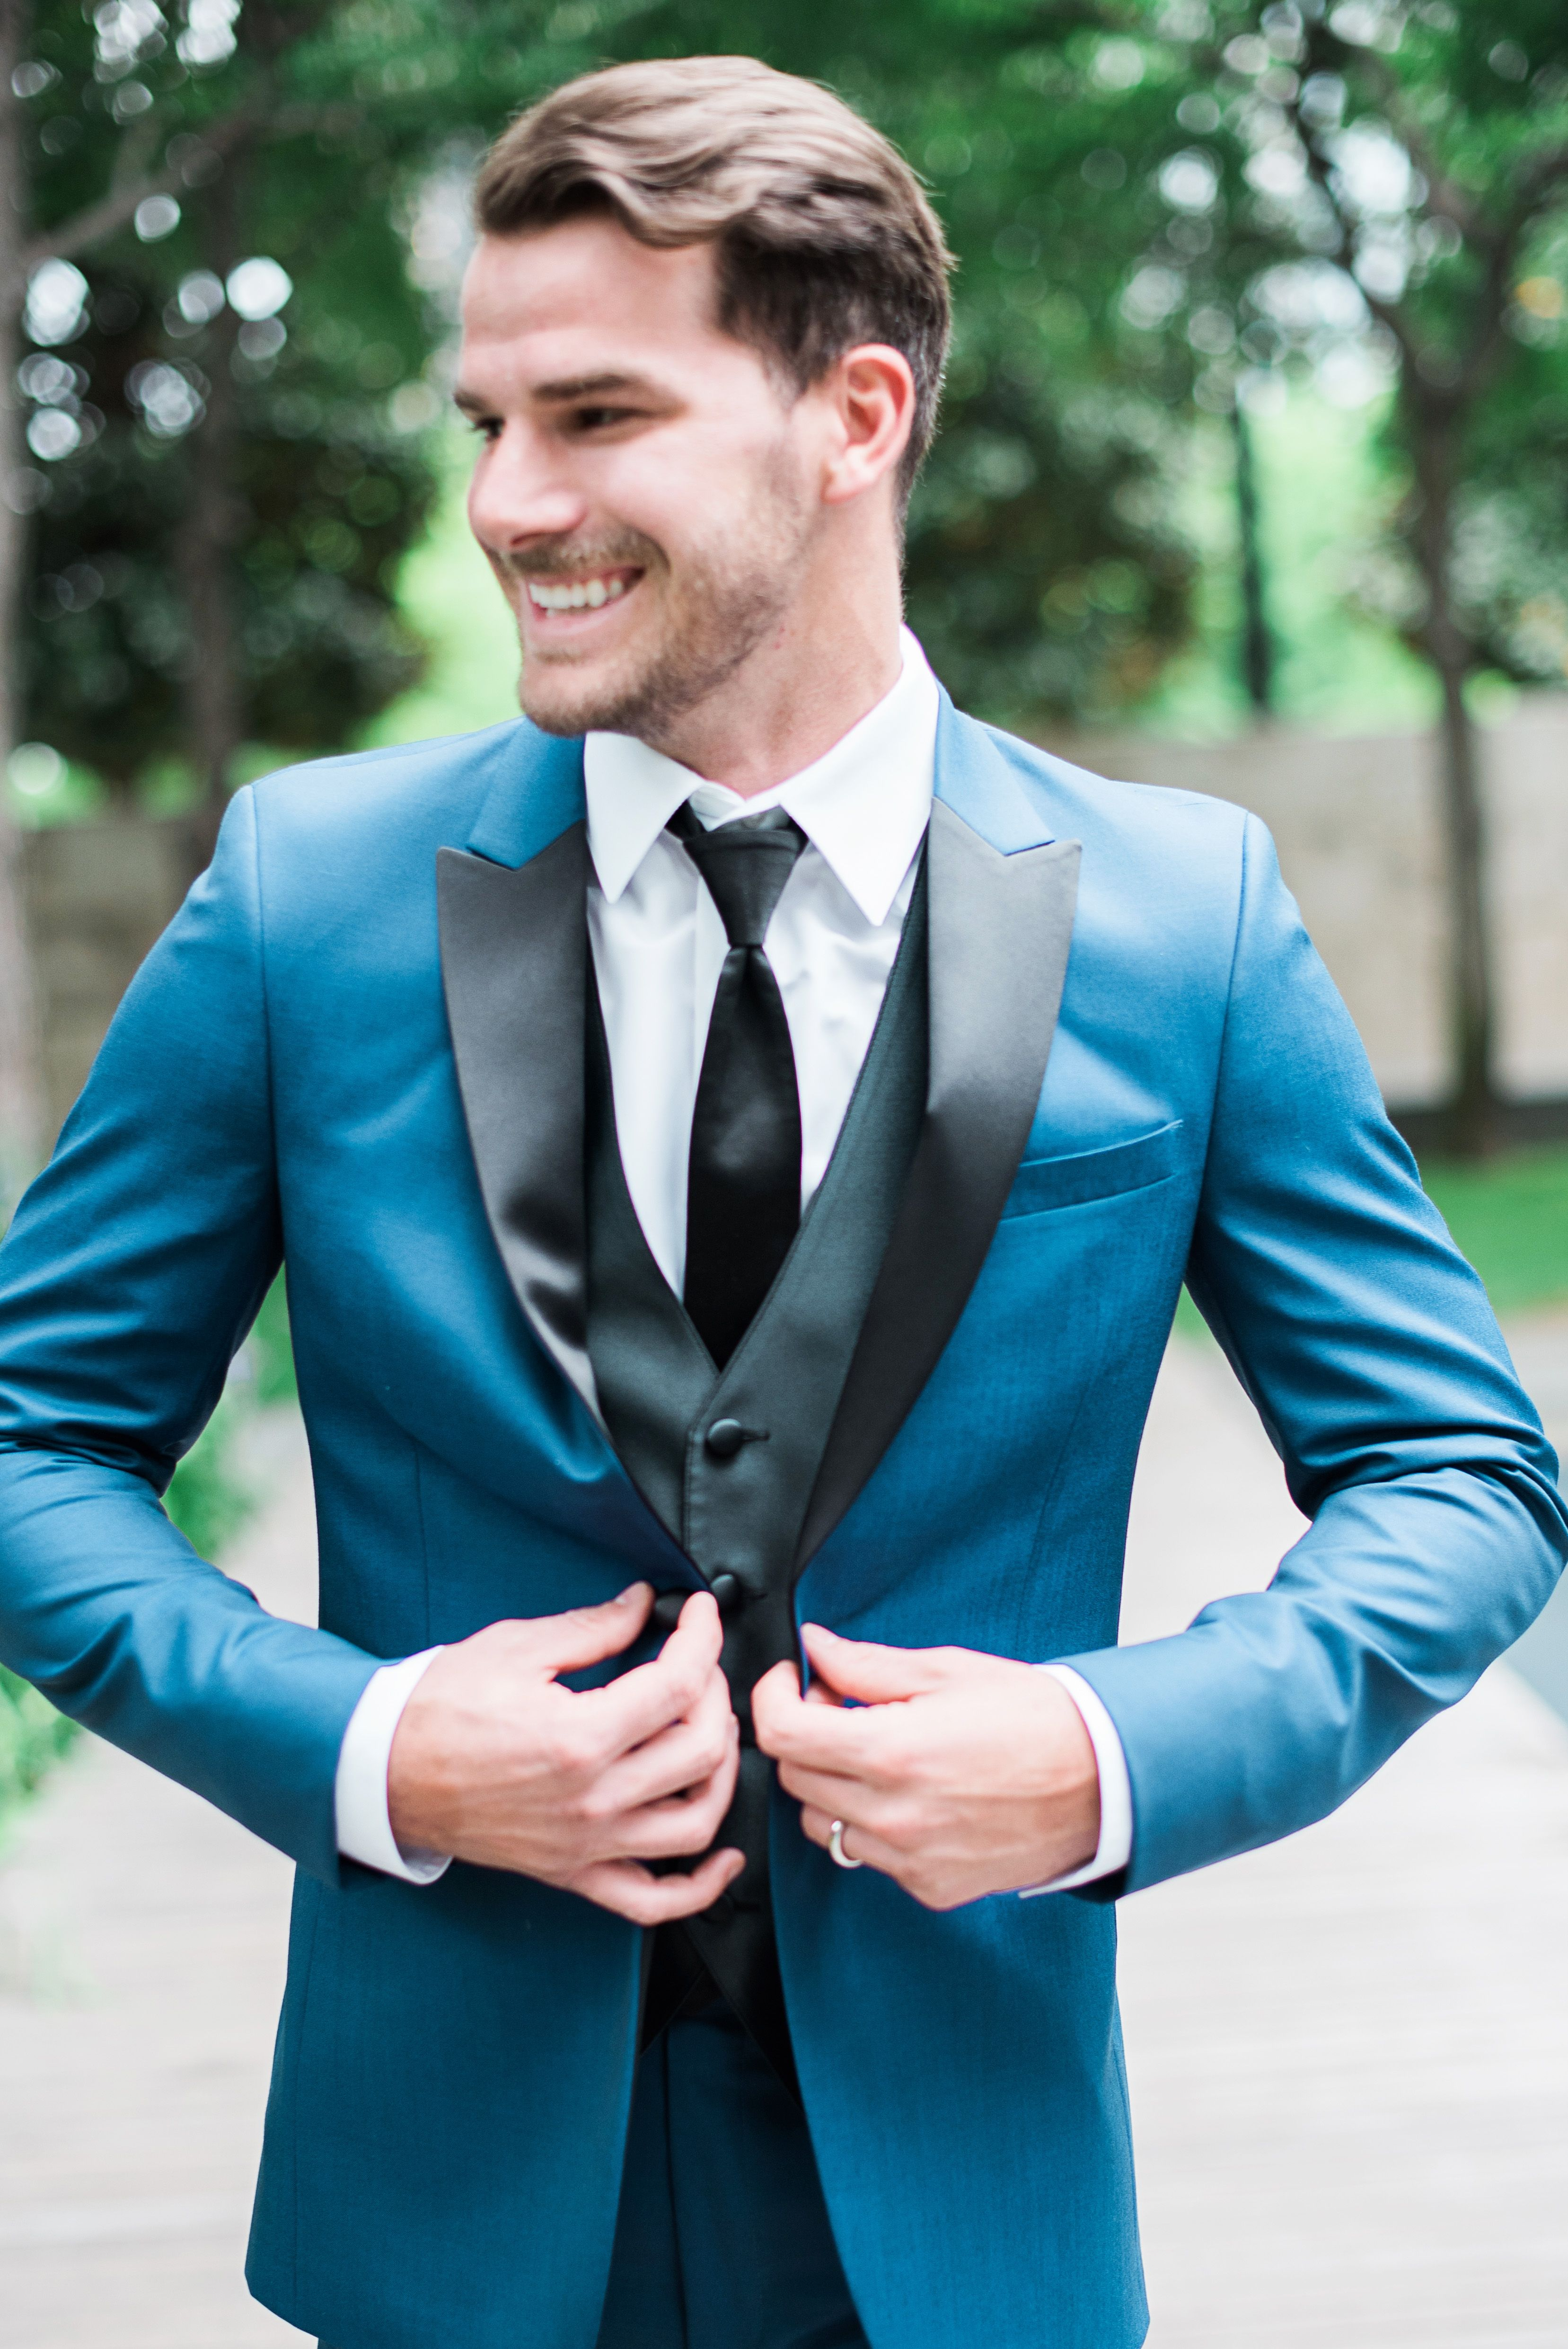 Modern Downtown Dallas Wedding Vibes by Rachel Elaine Photography ...